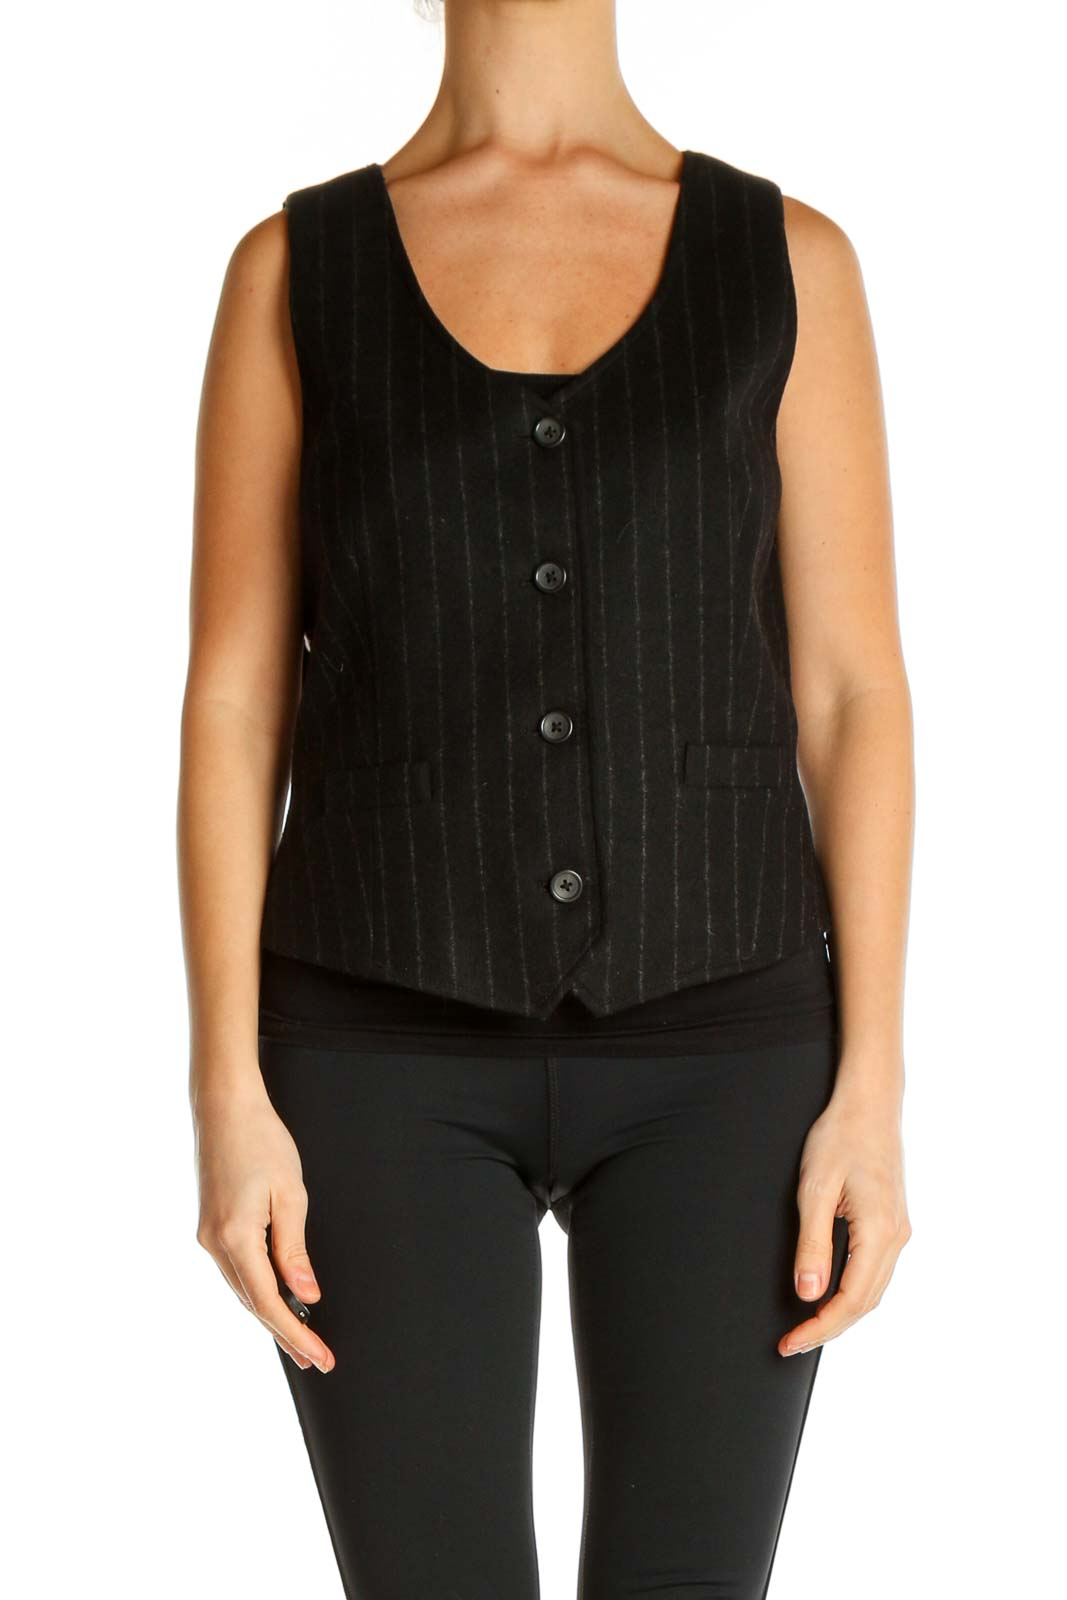 Black Solid All Day Wear Tank Top Front